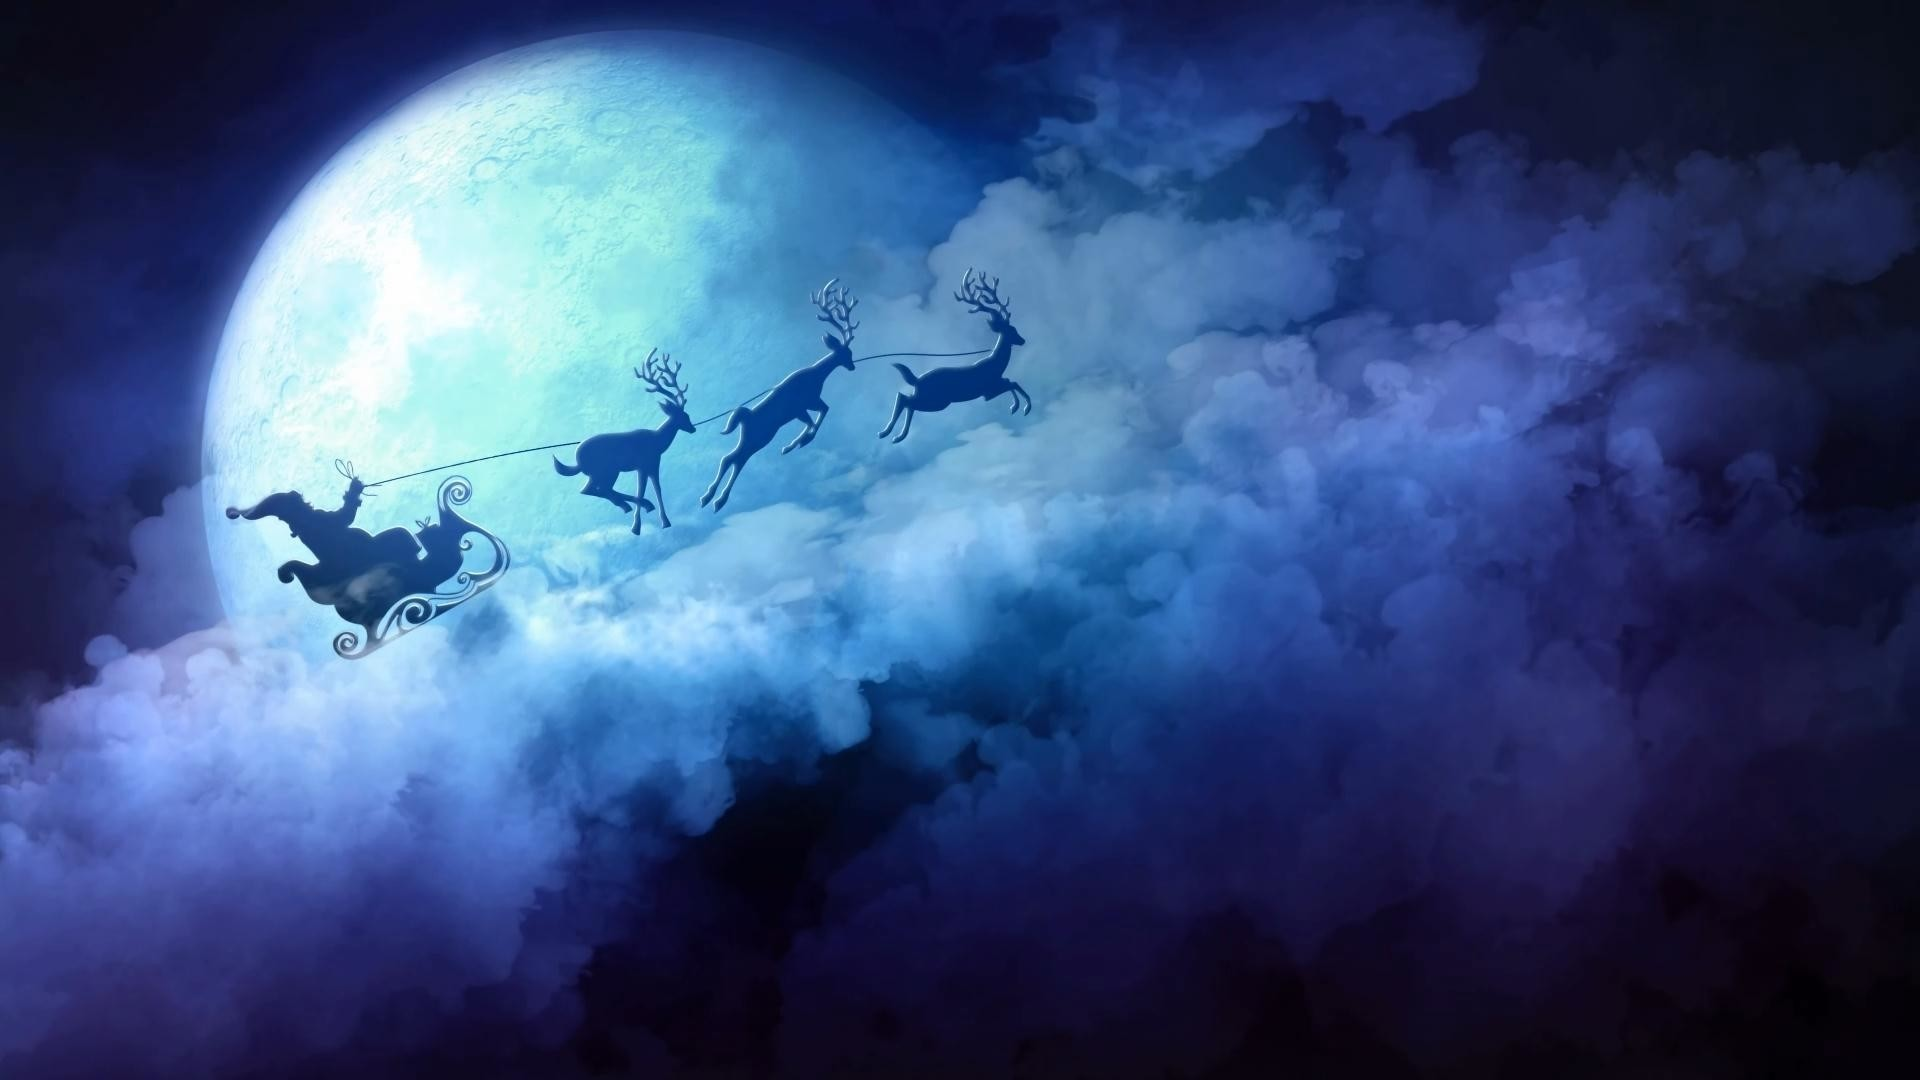 Christmas Wallpapers 1920x1080 81 Background Pictures